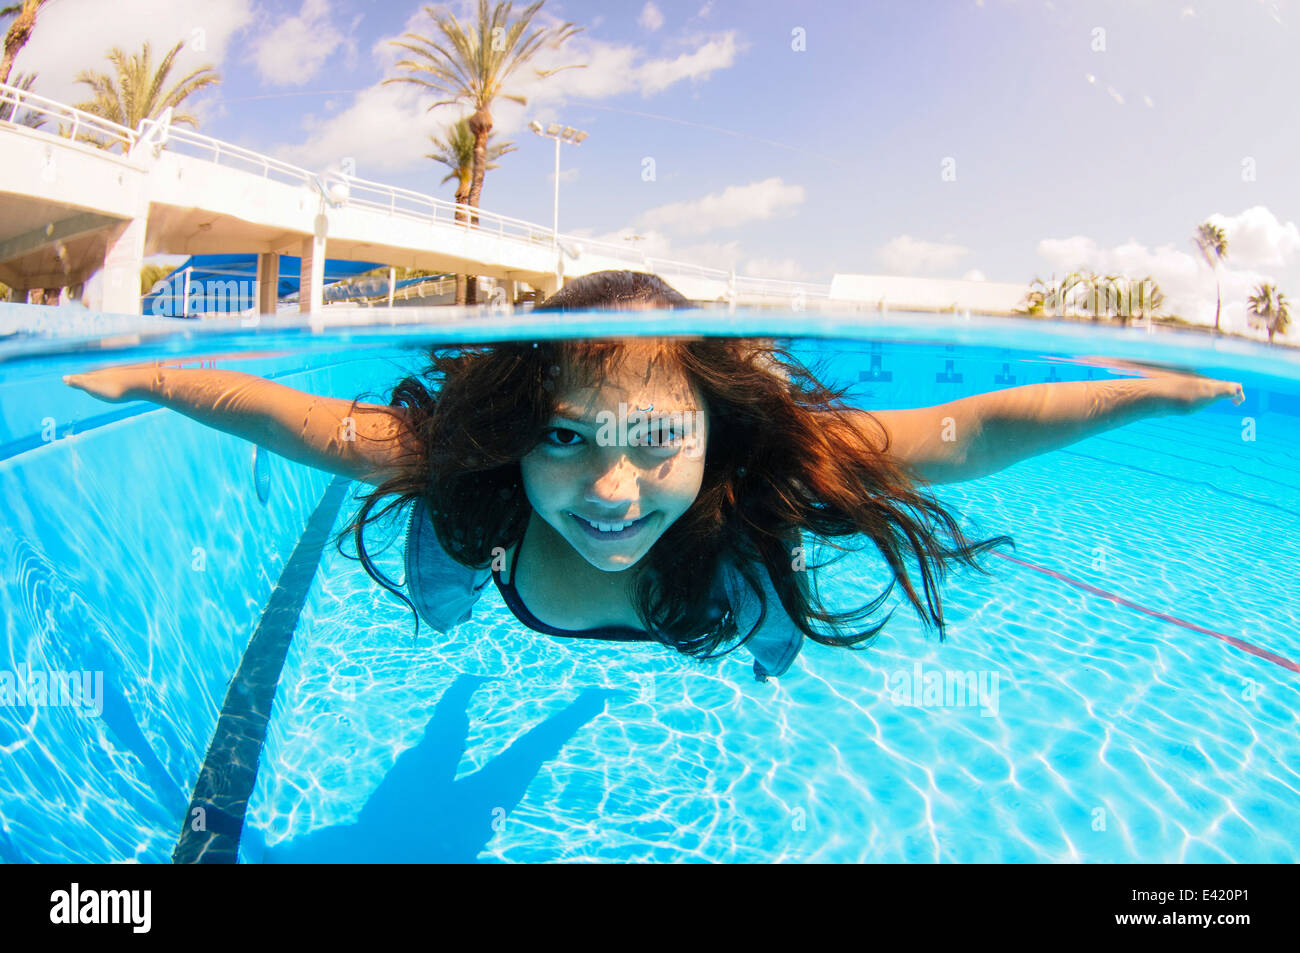 Girl free diving under water in swimming pool - Stock Image